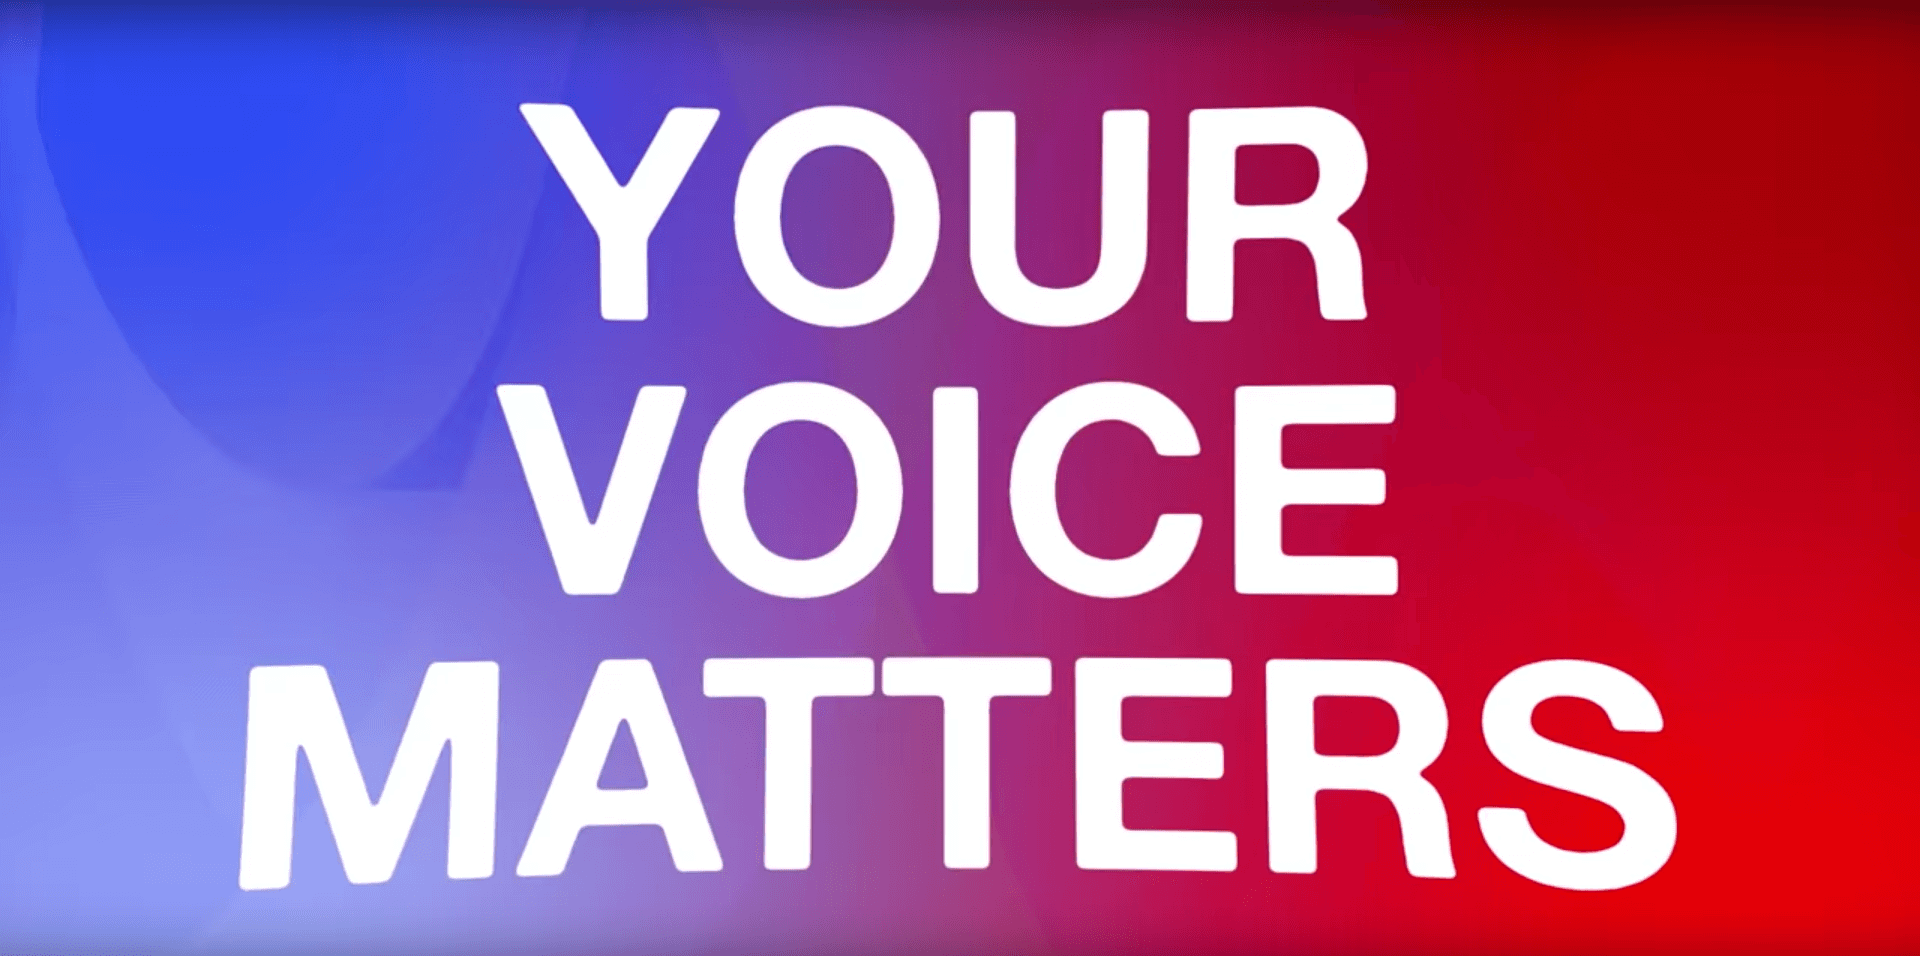 YOUR VOICE MATTERS – A short film by Paris Brosnan